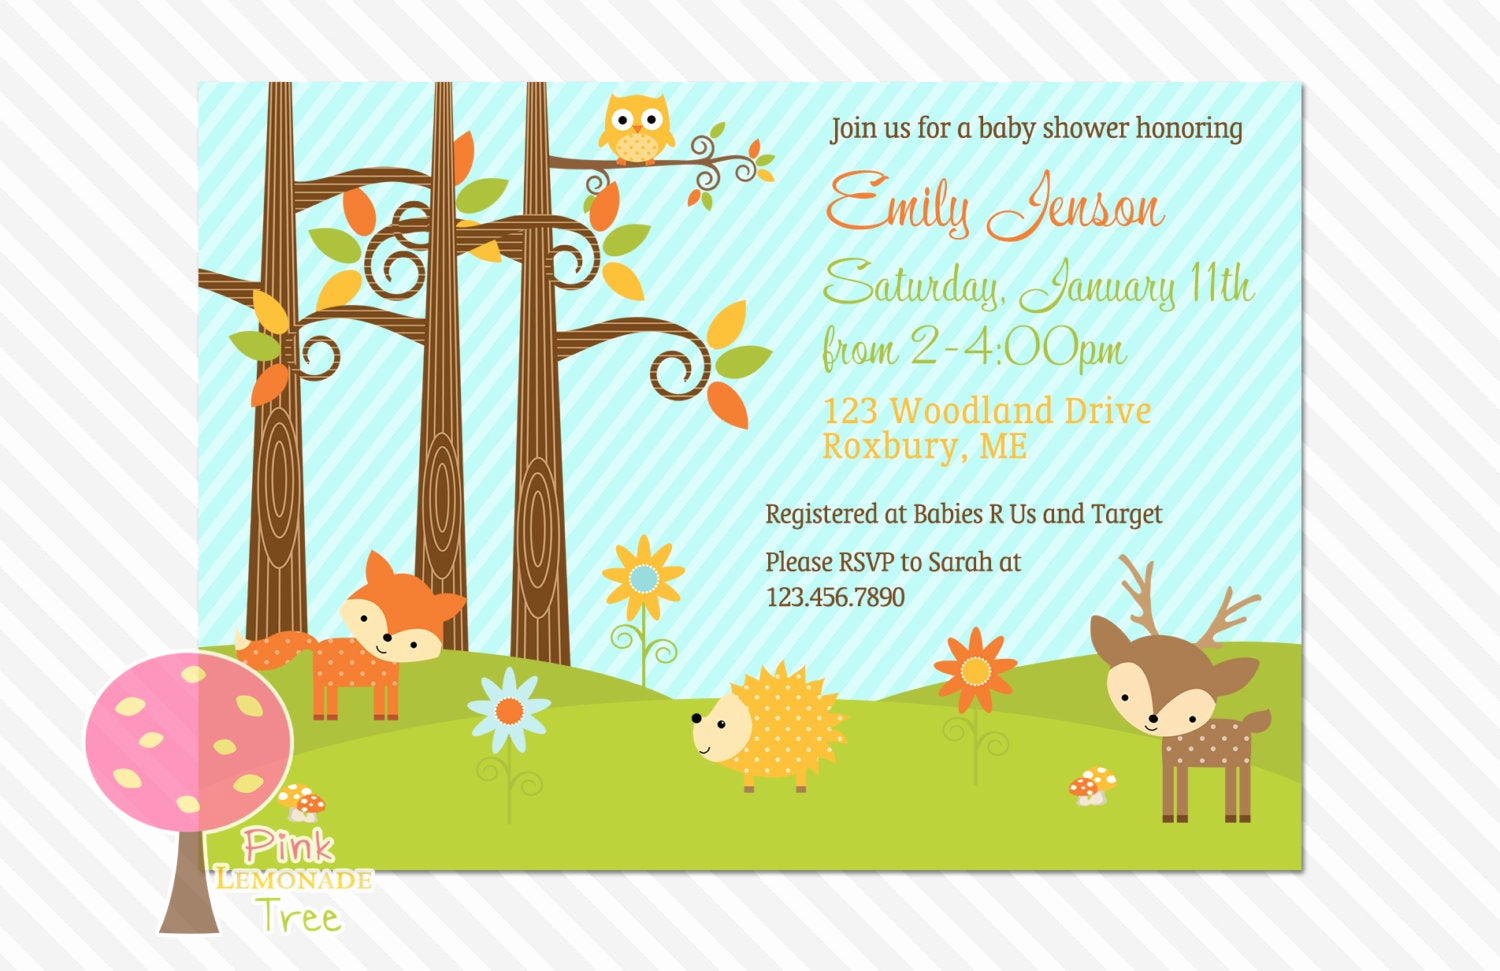 Woodland Baby Shower Invitation Awesome Woodland Baby Shower Invitation Boy or Girl Gender Neutral